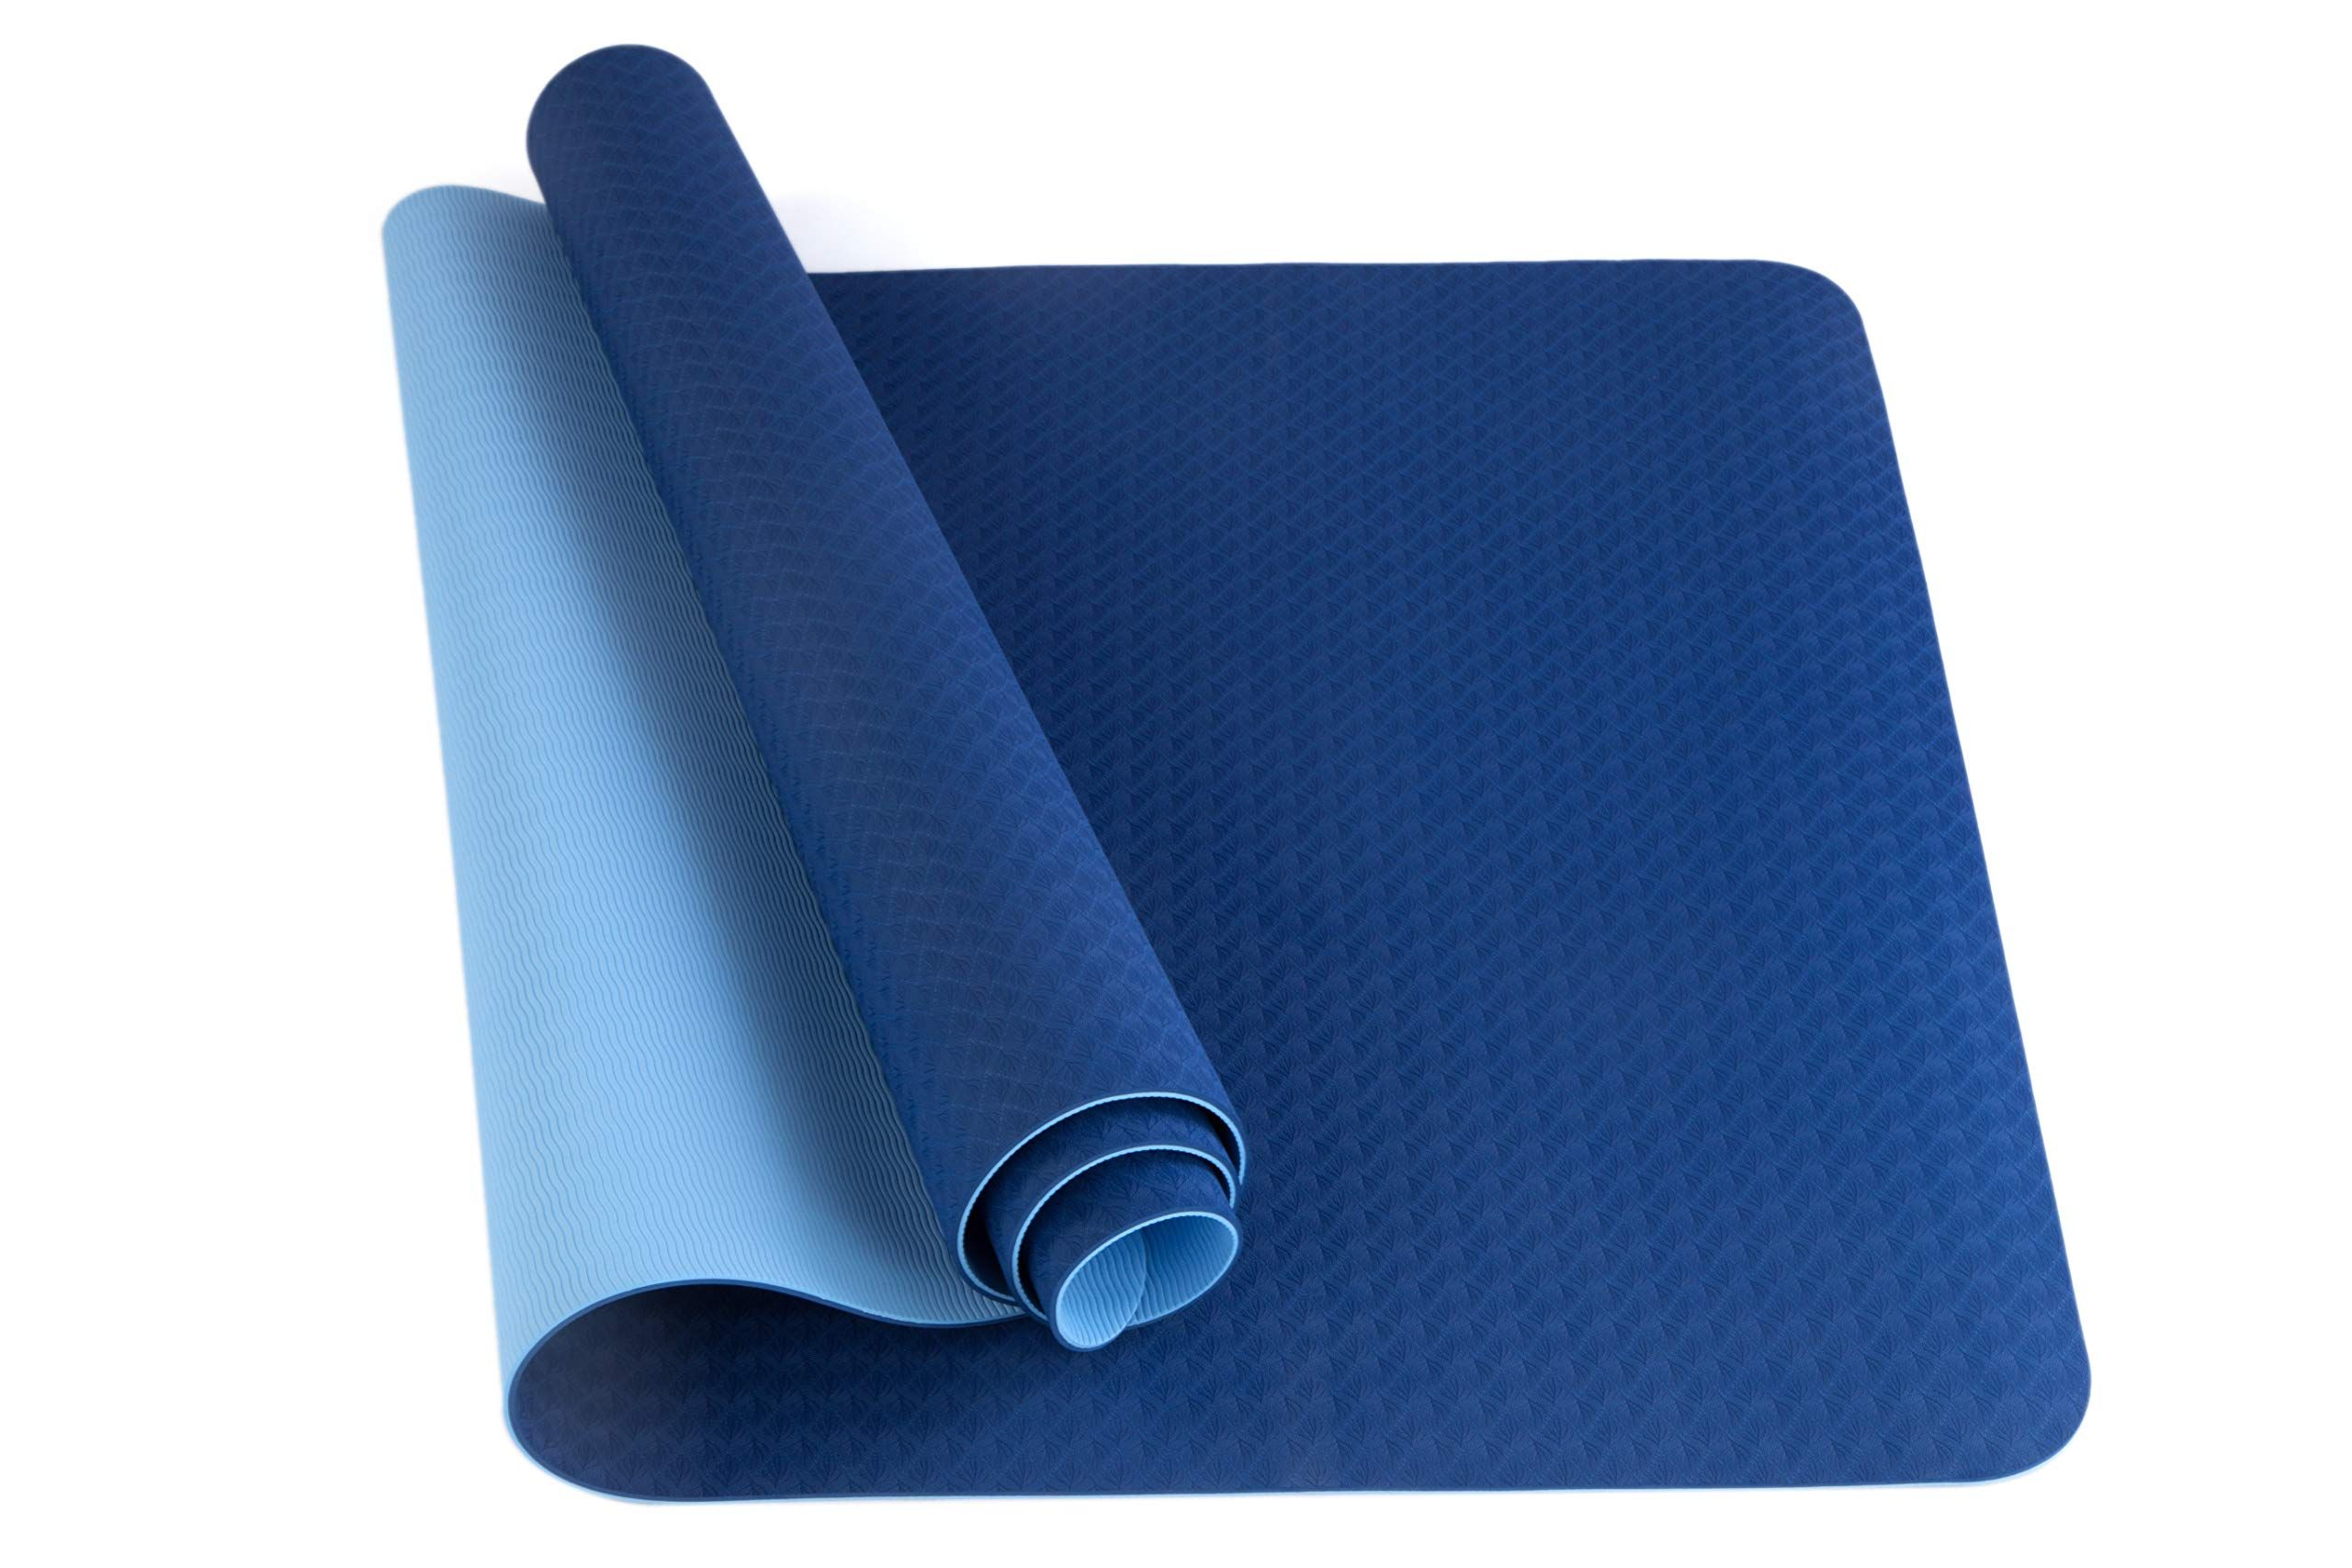 Cambivo Large Yoga Mat Eco Friendly Non Slip Exercise Tpe Mat With Strap For Men And Women 73 X 32 X 1 4 Large Yoga Mat Yoga Mat Mats